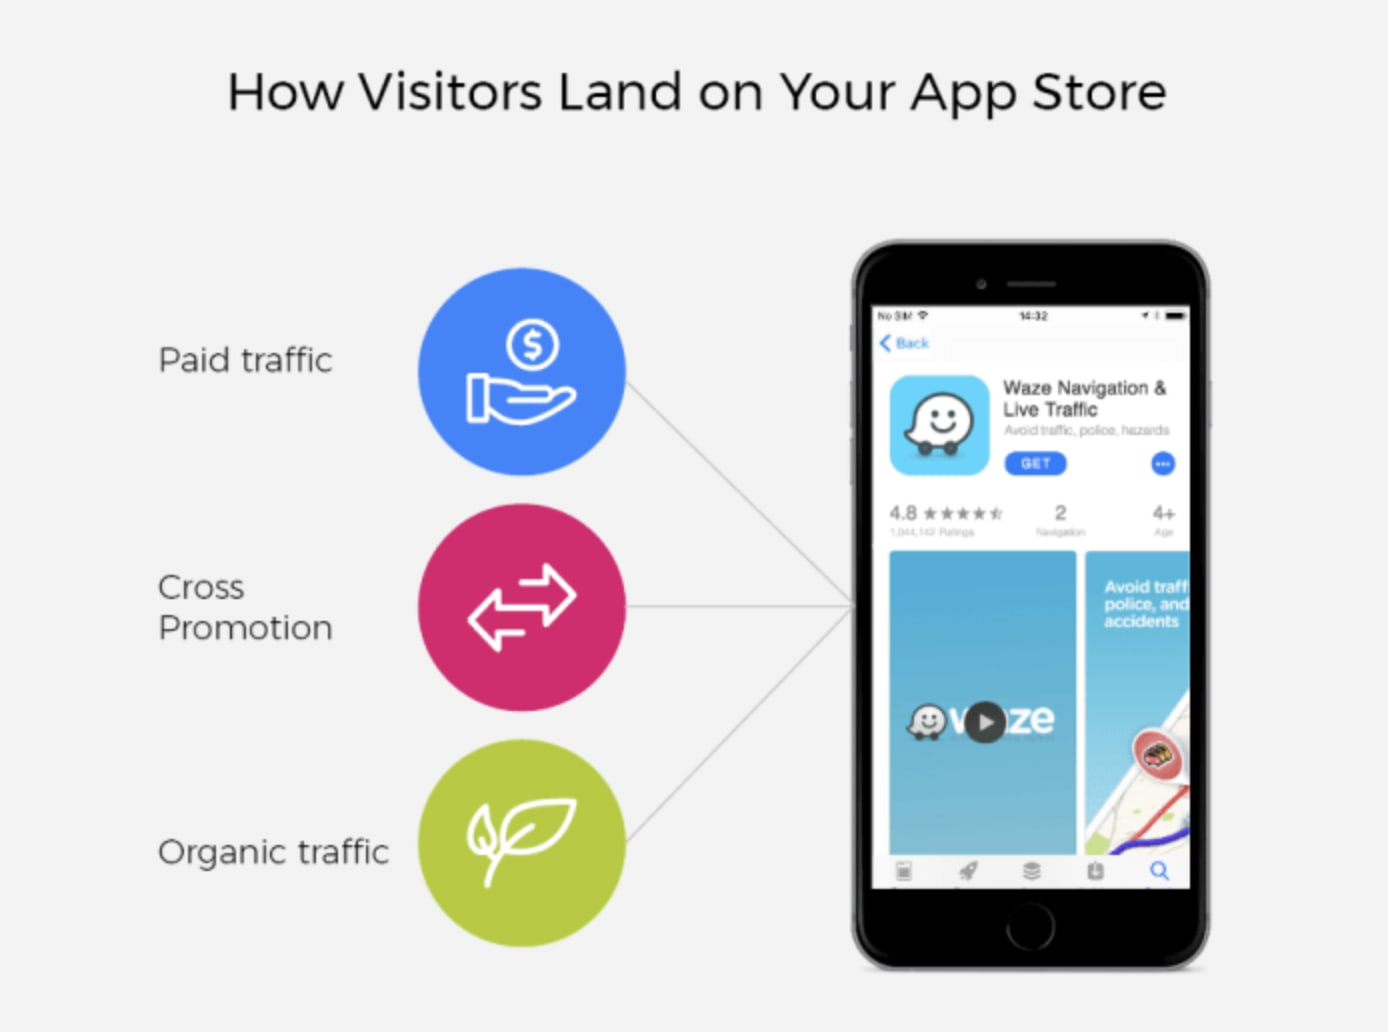 How Visitors Land on Your App